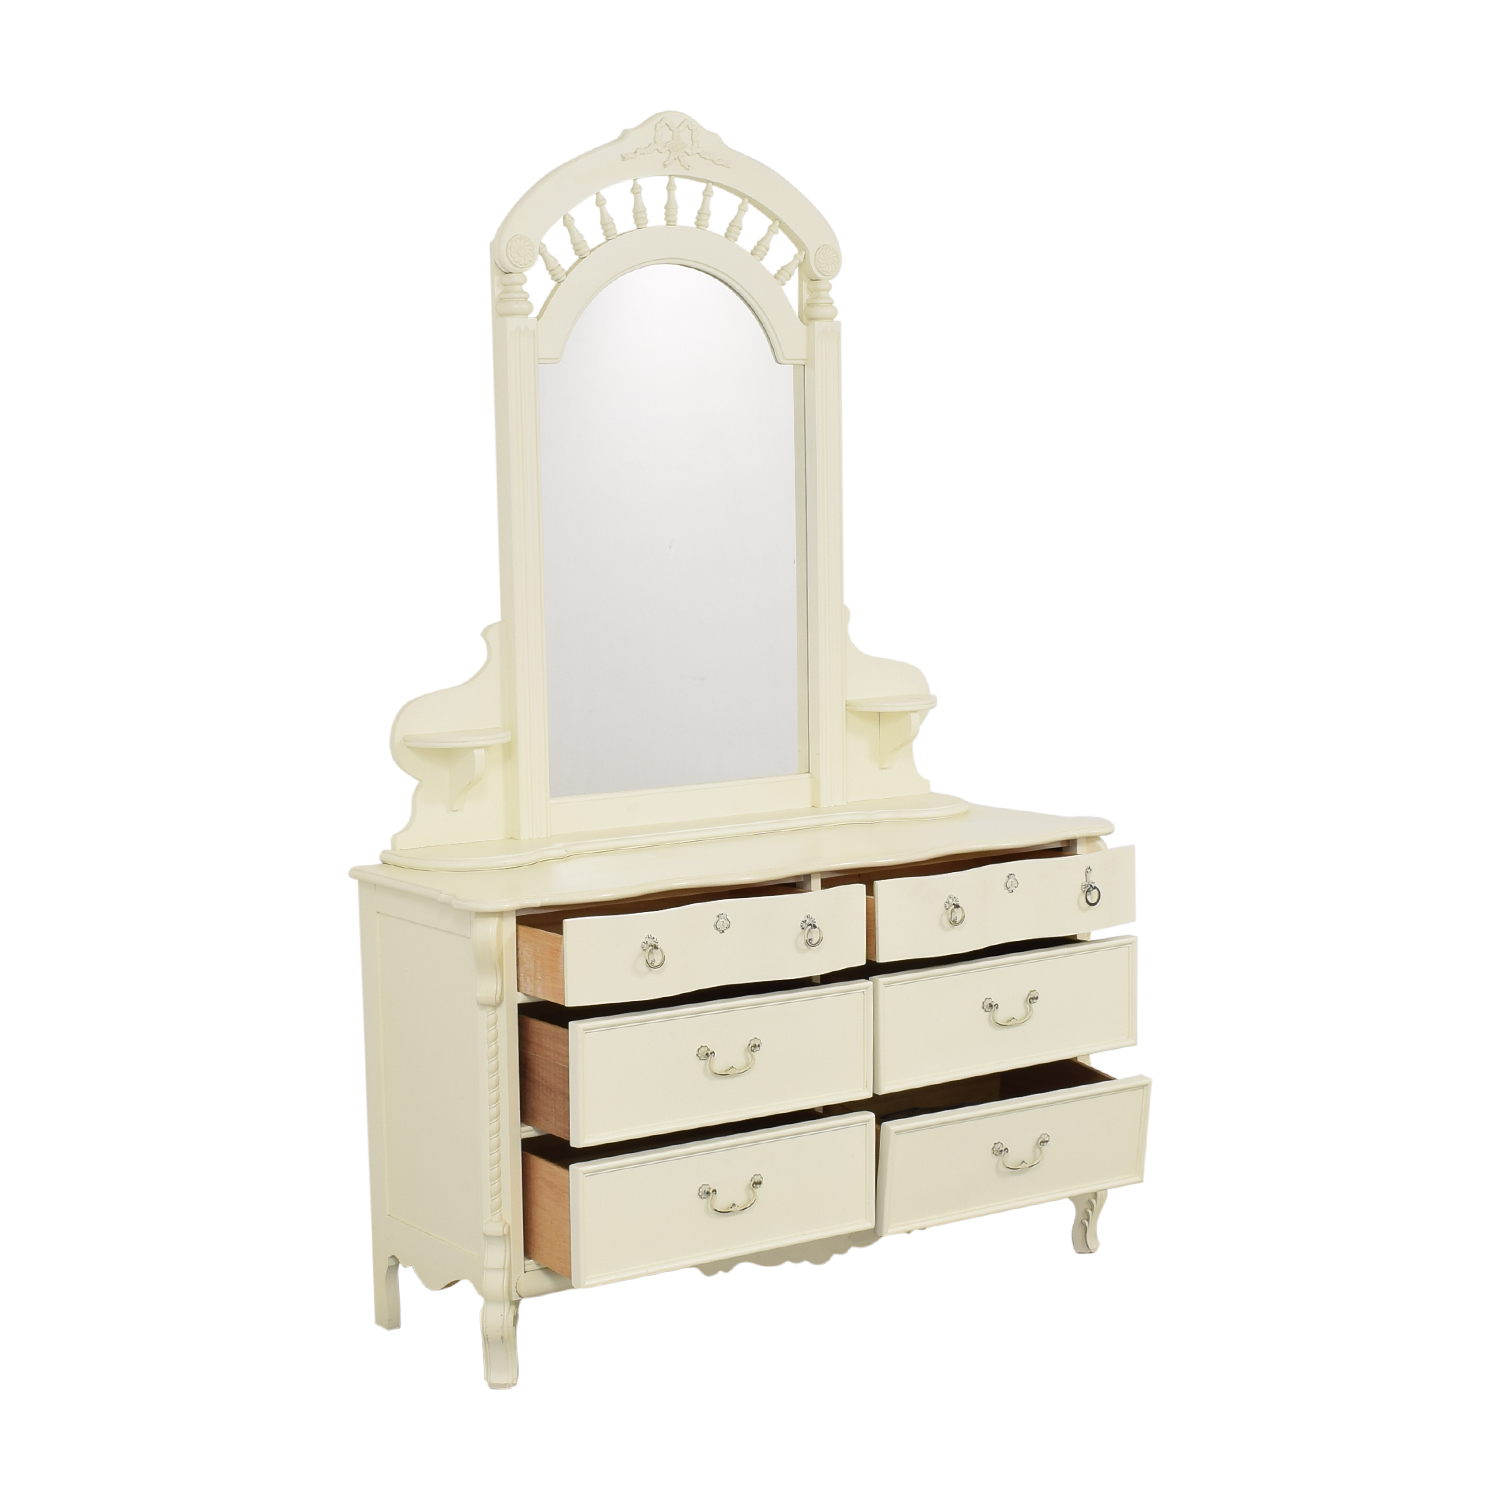 Lexington Furniture Lexington Furniture Dresser with Mirror coupon